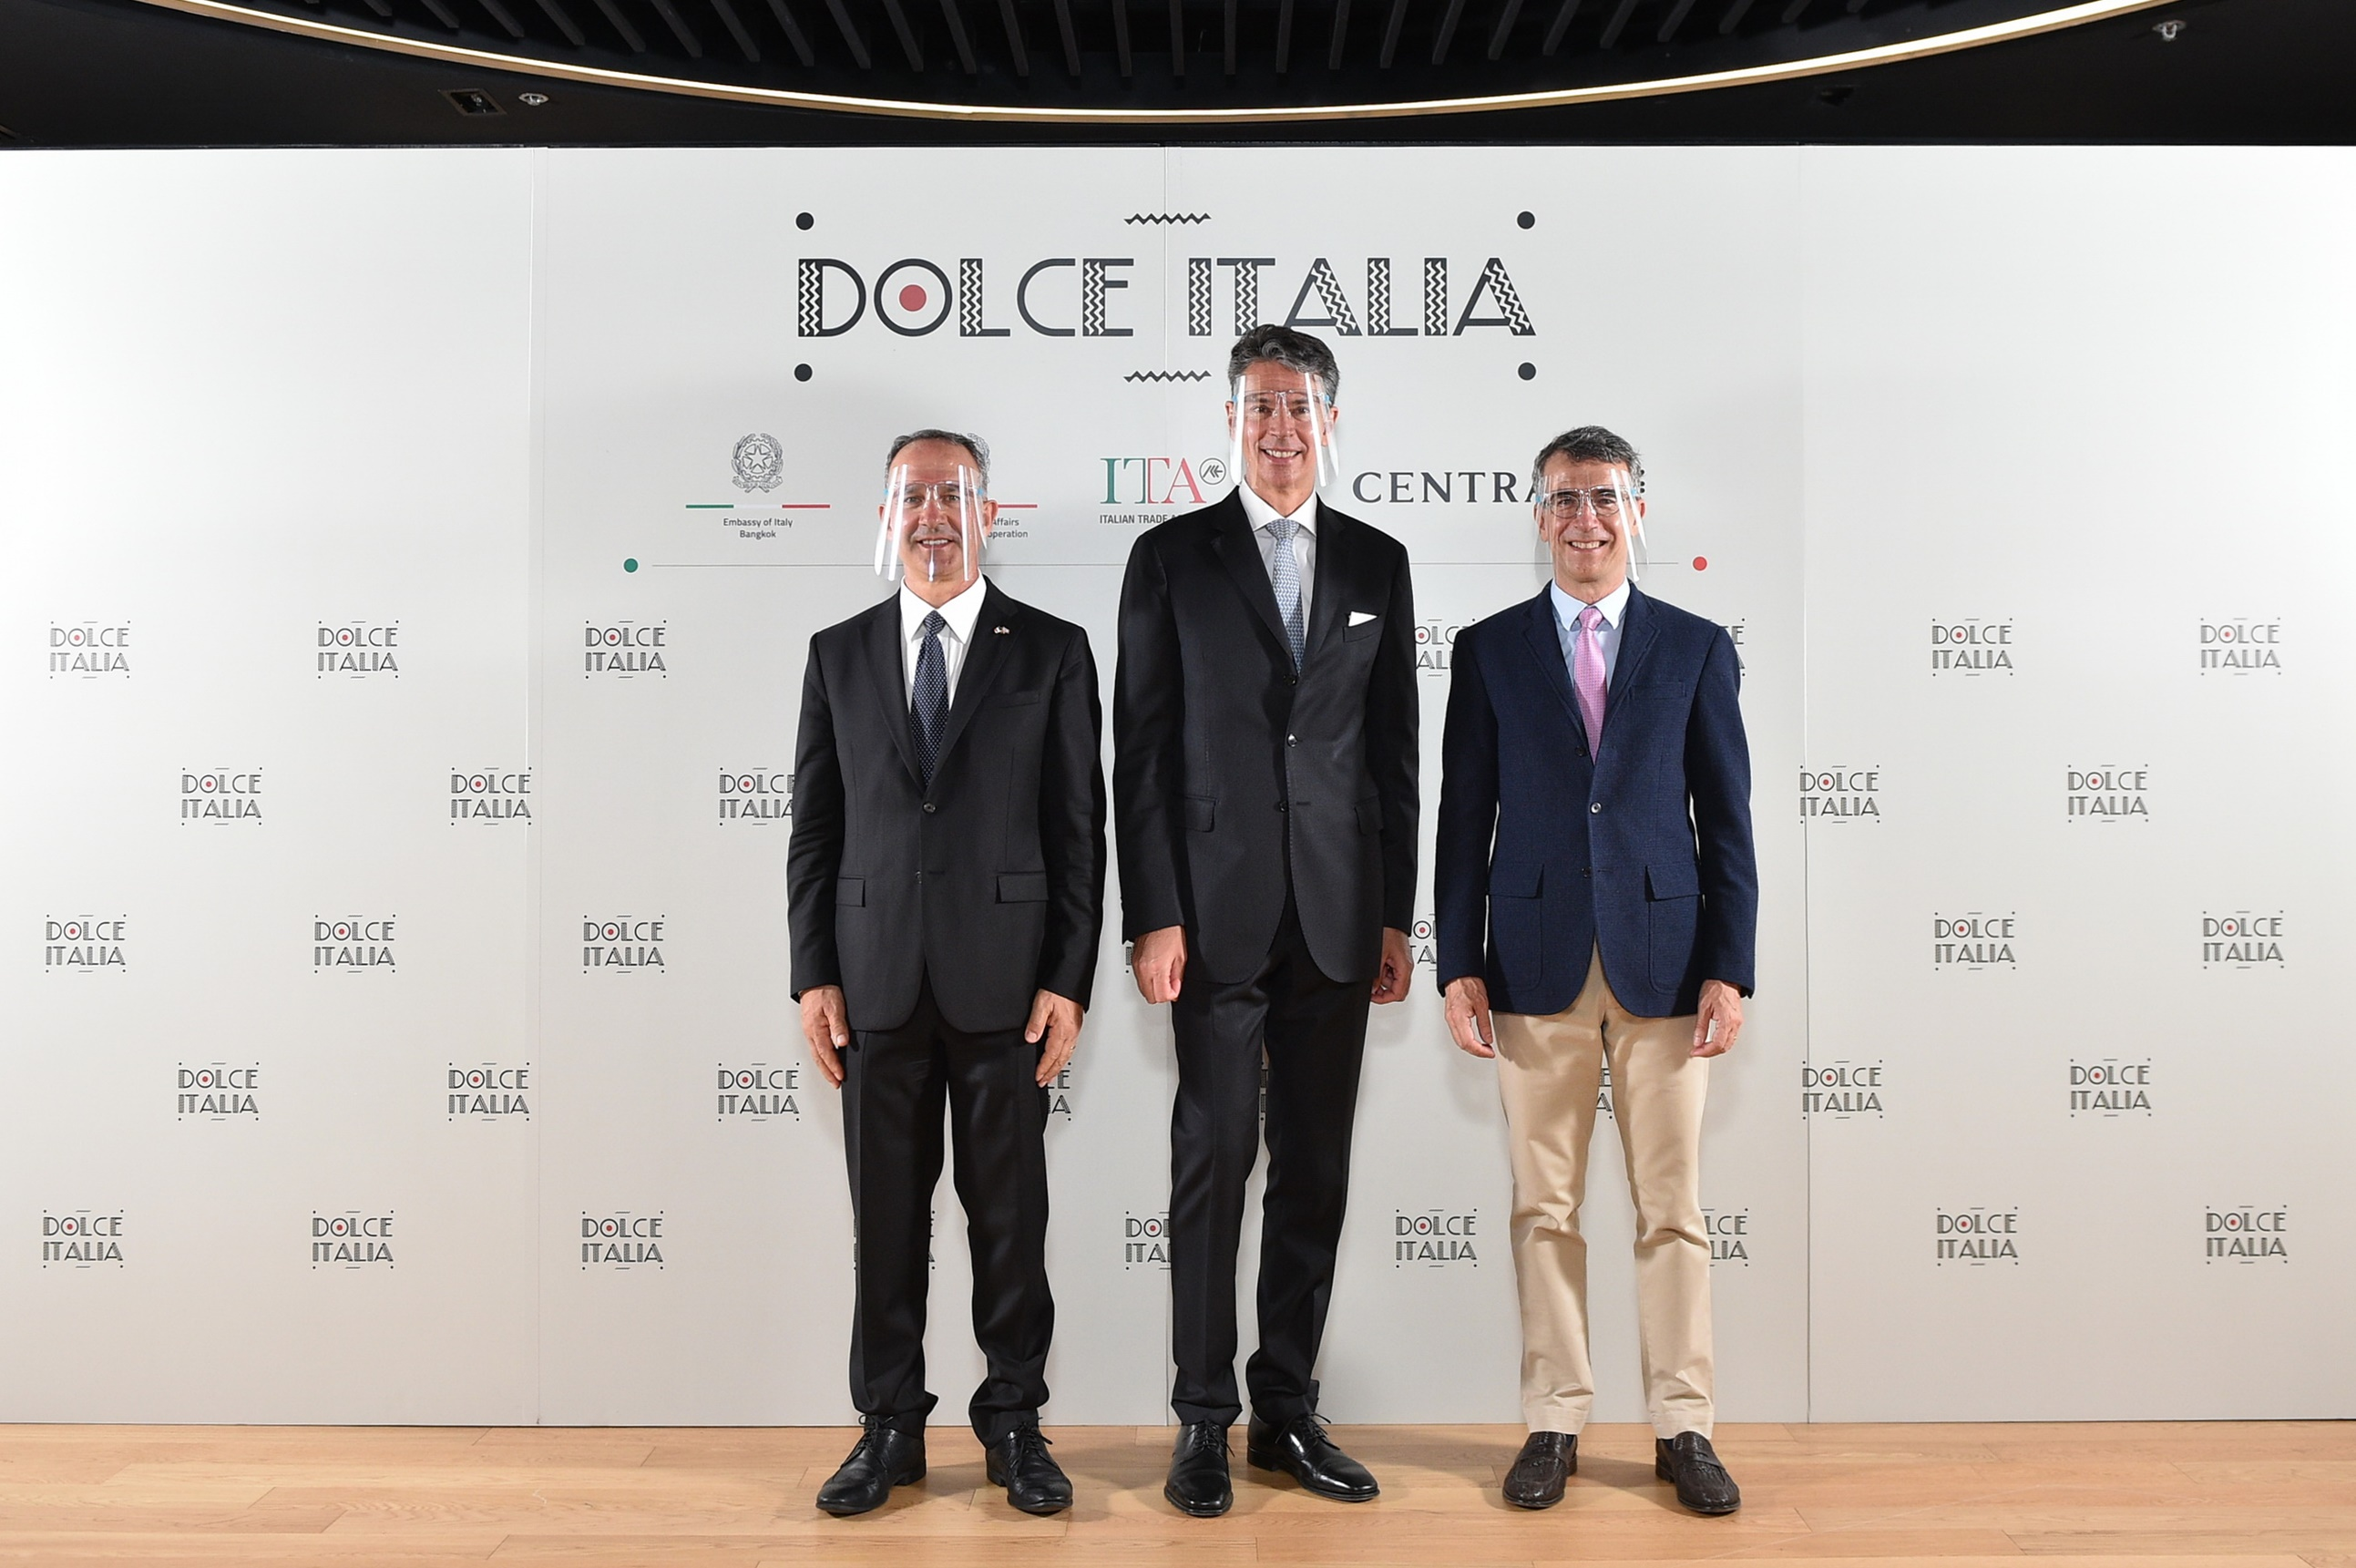 Picture for Press release (short news) of Dolce Italia.jpg